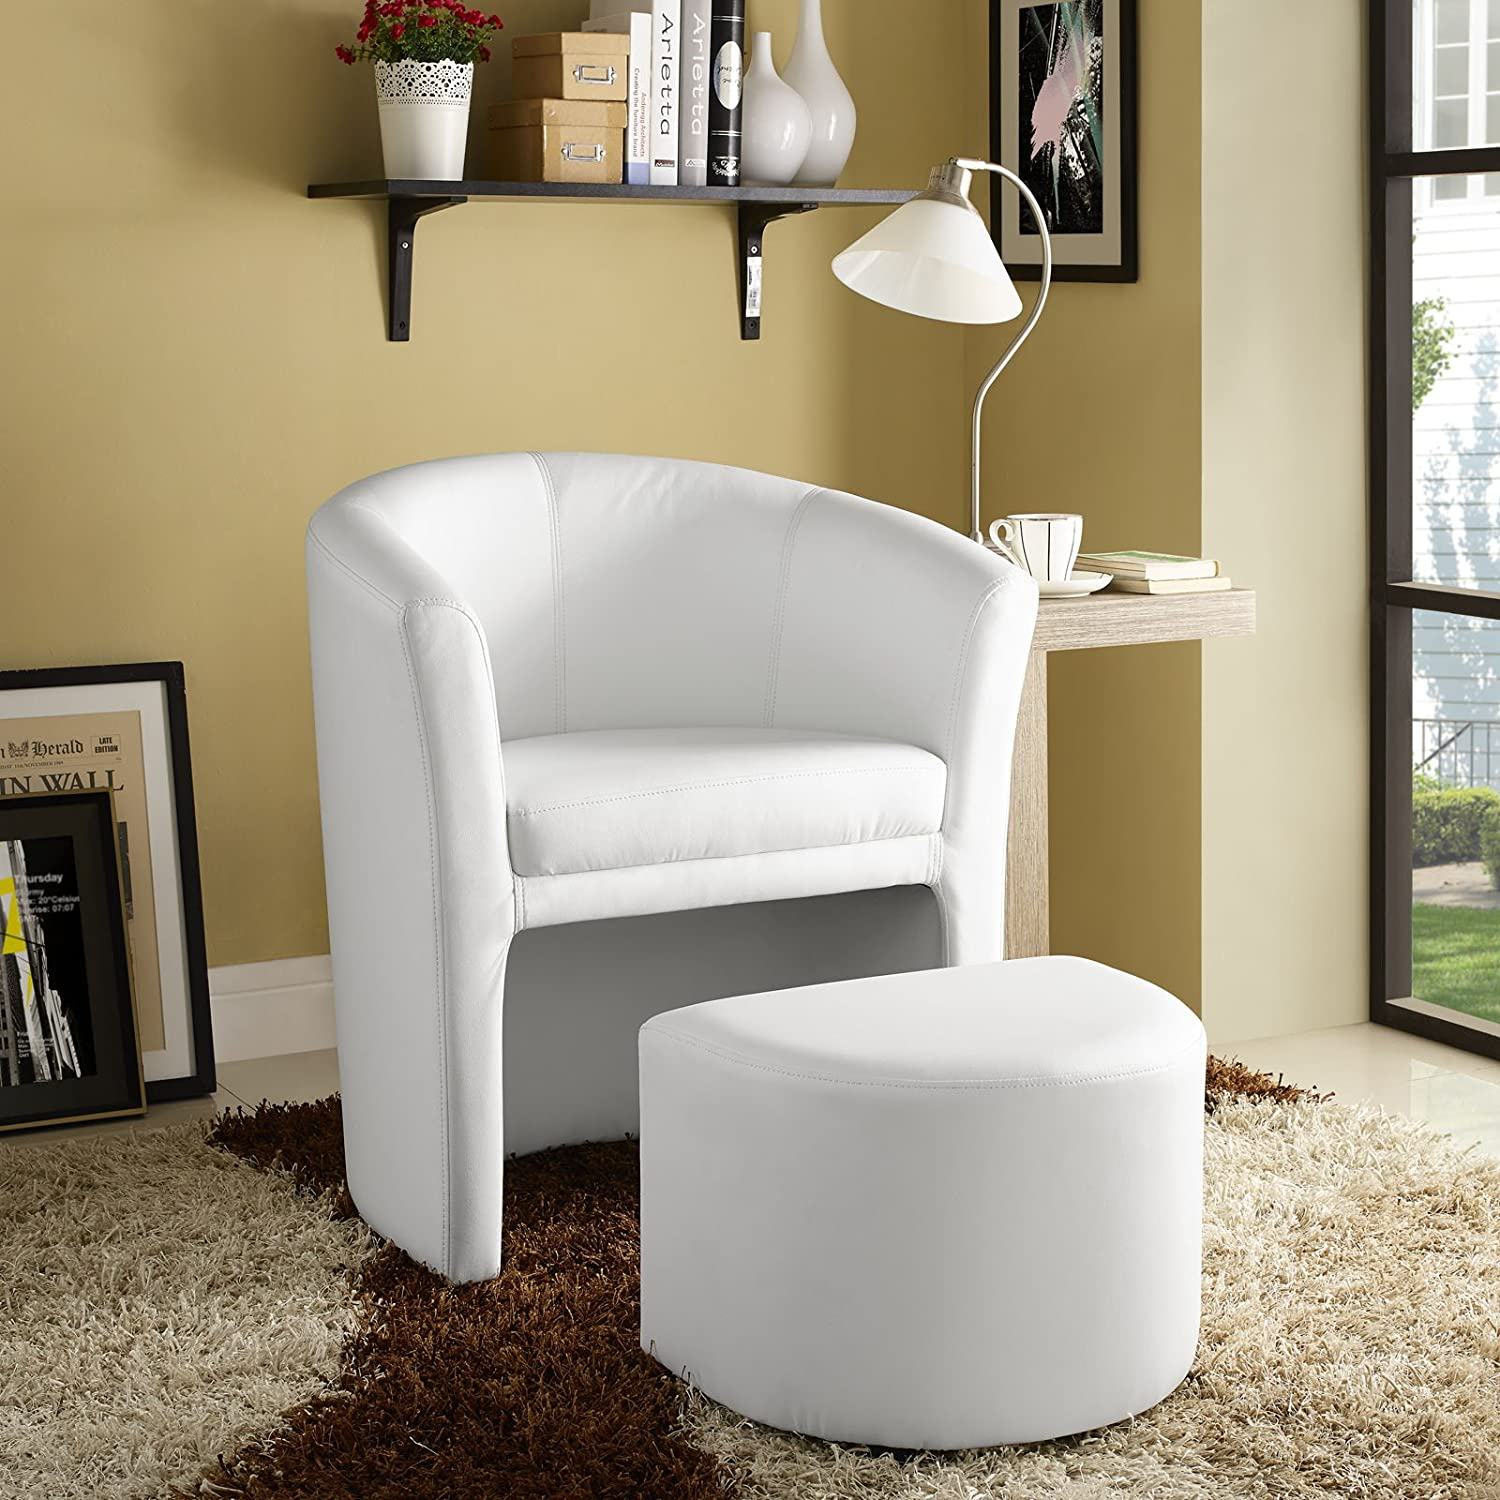 Modway EEI-1407-WHI Divulge Faux Leather Accent Arm Lounge Chair and Ottoman 2-Piece Set White